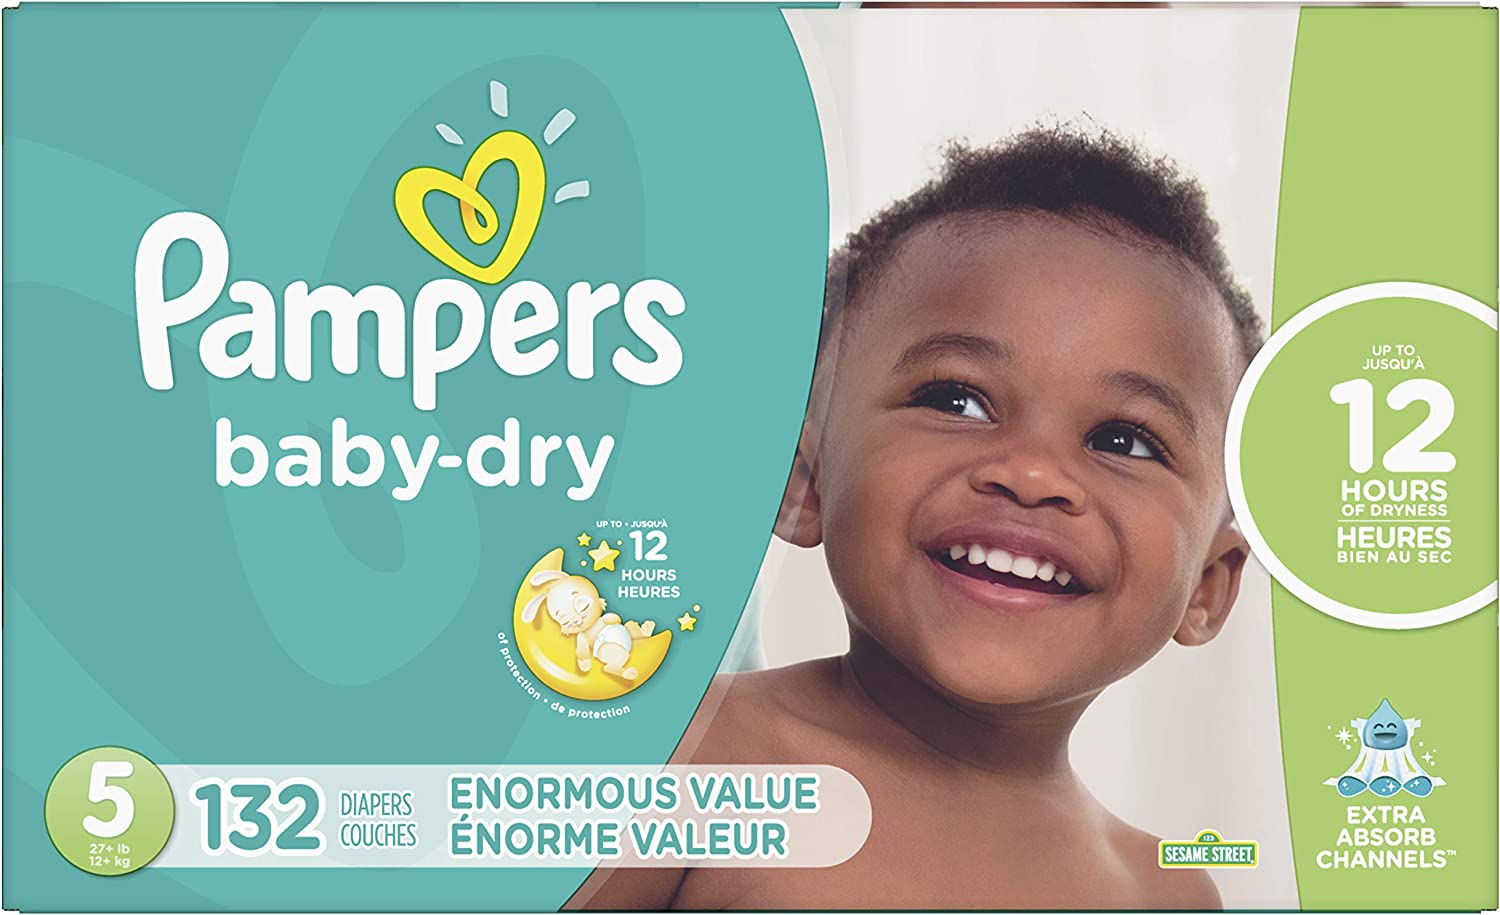 Diapers Size 5, 132 Count - Pampers Baby Dry Disposable Baby Diapers, Enormous Pack